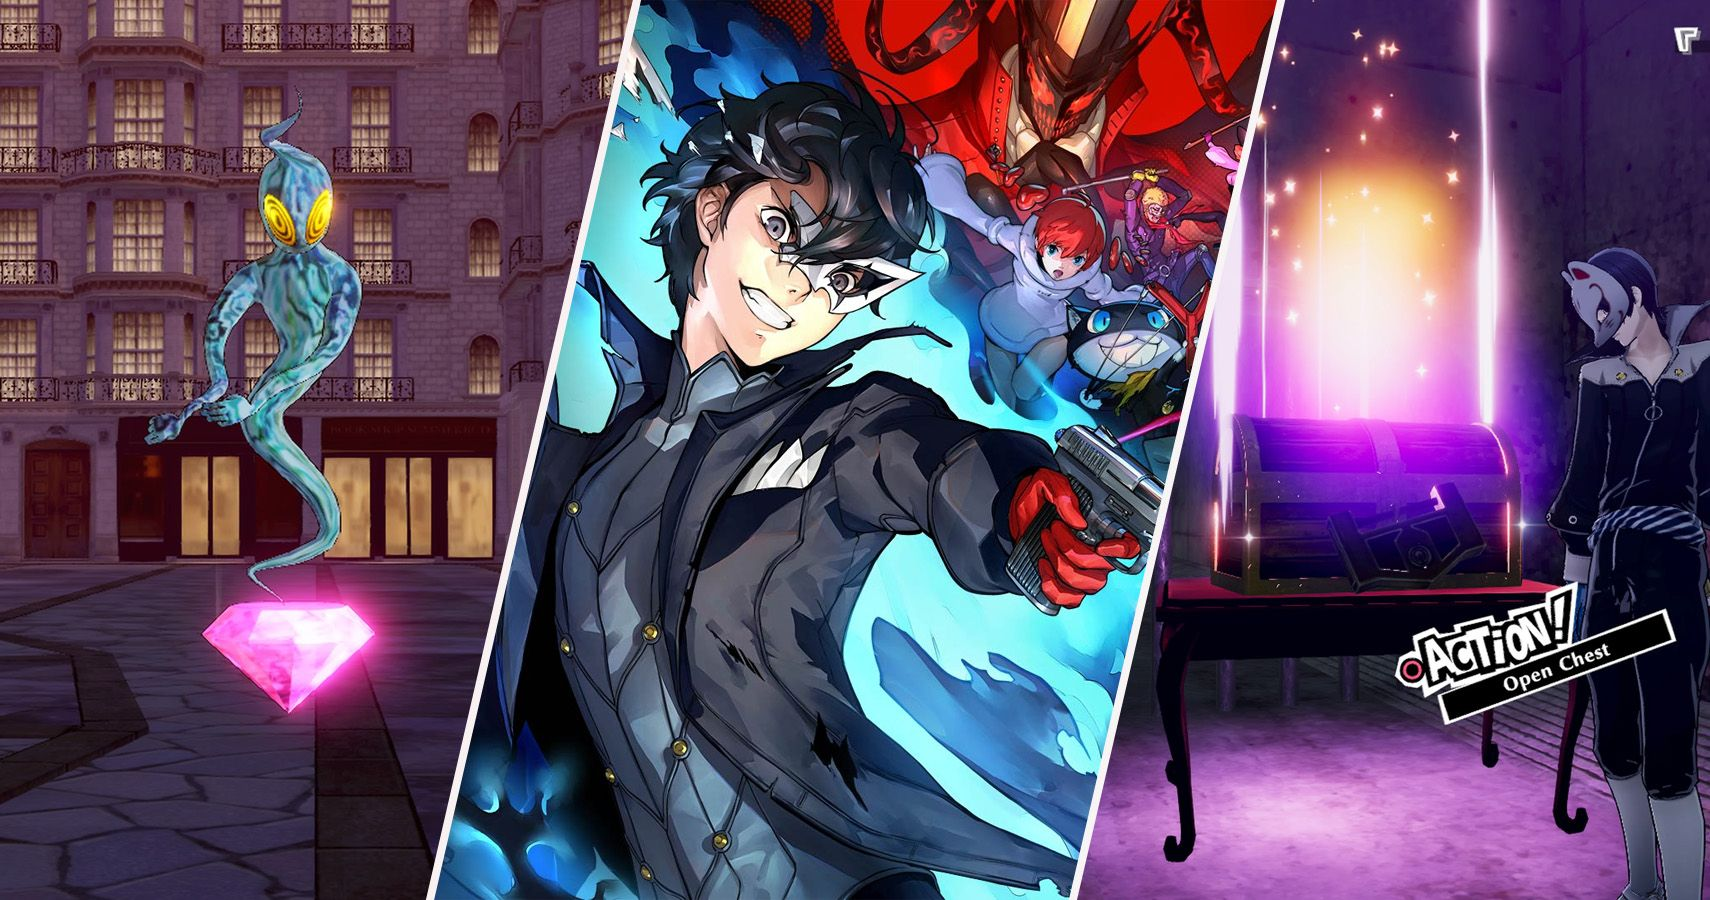 Persona 5 Guide on Making Money